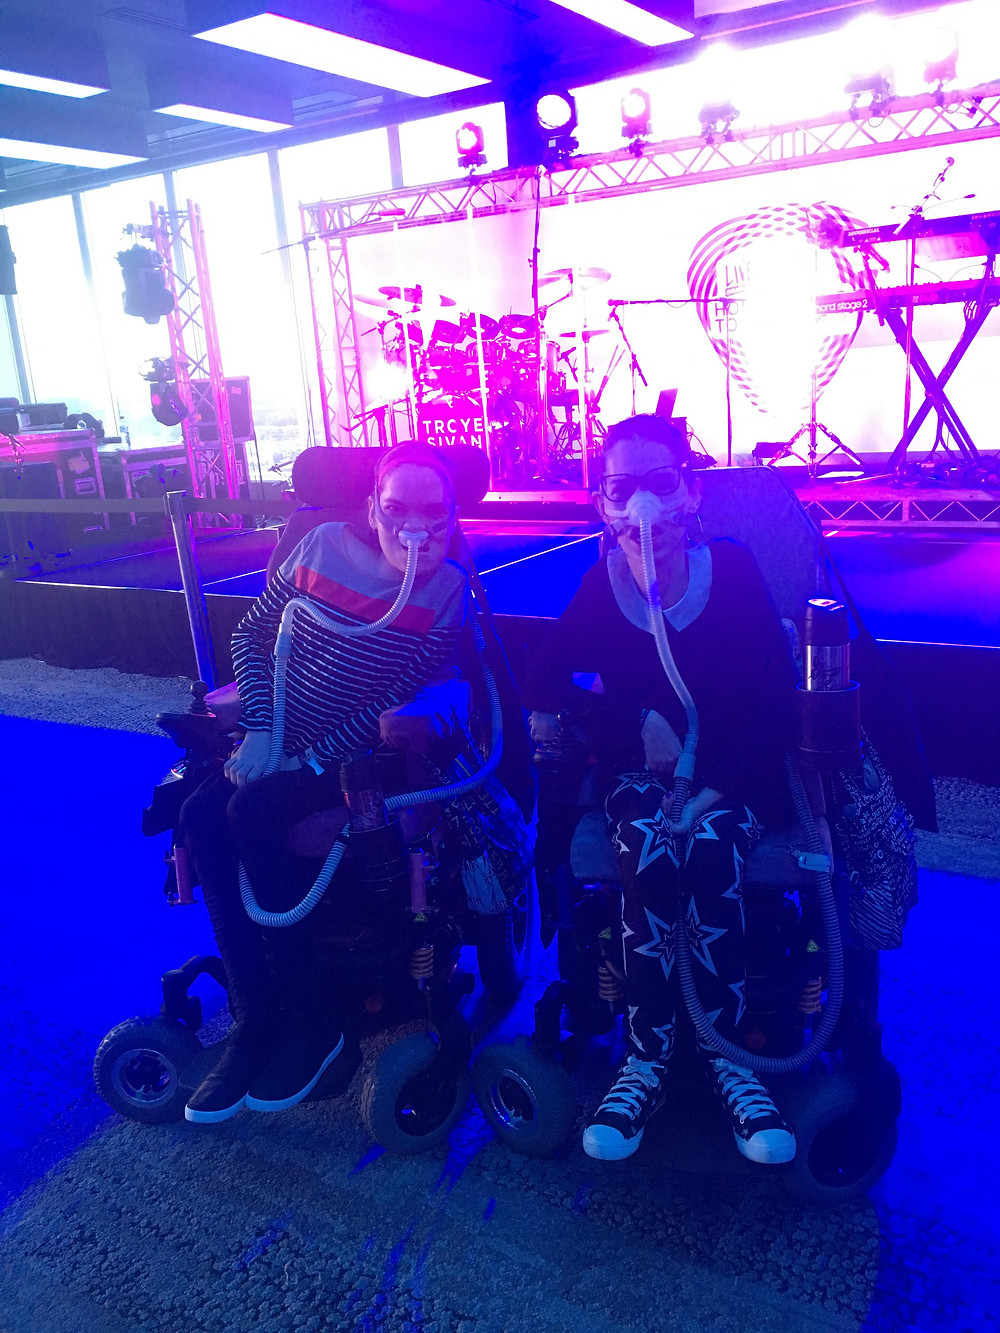 two young women in wheelchairs at a concert